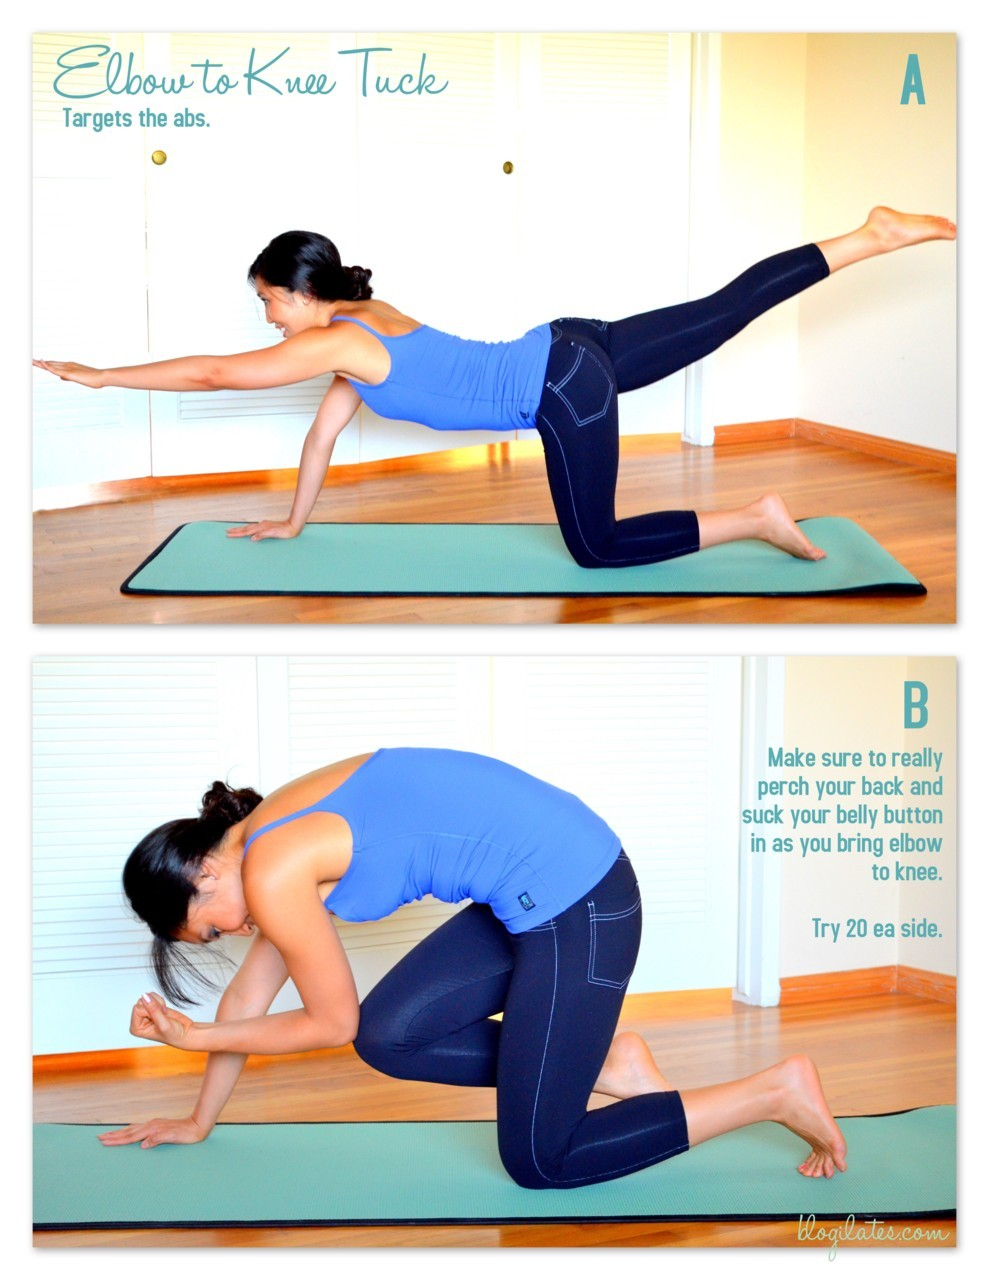 Move of the Day: Elbow to Knee Tuck Targets your abs! This is your new move for today. Remember to do it slowly and precisely. You MUST perch your back as you come in or else you will not be doing your abs any good. Squeeze, squeeze, squeeze your belly button into your spine! Have fun. 20 ea side for me. <3 Cassey